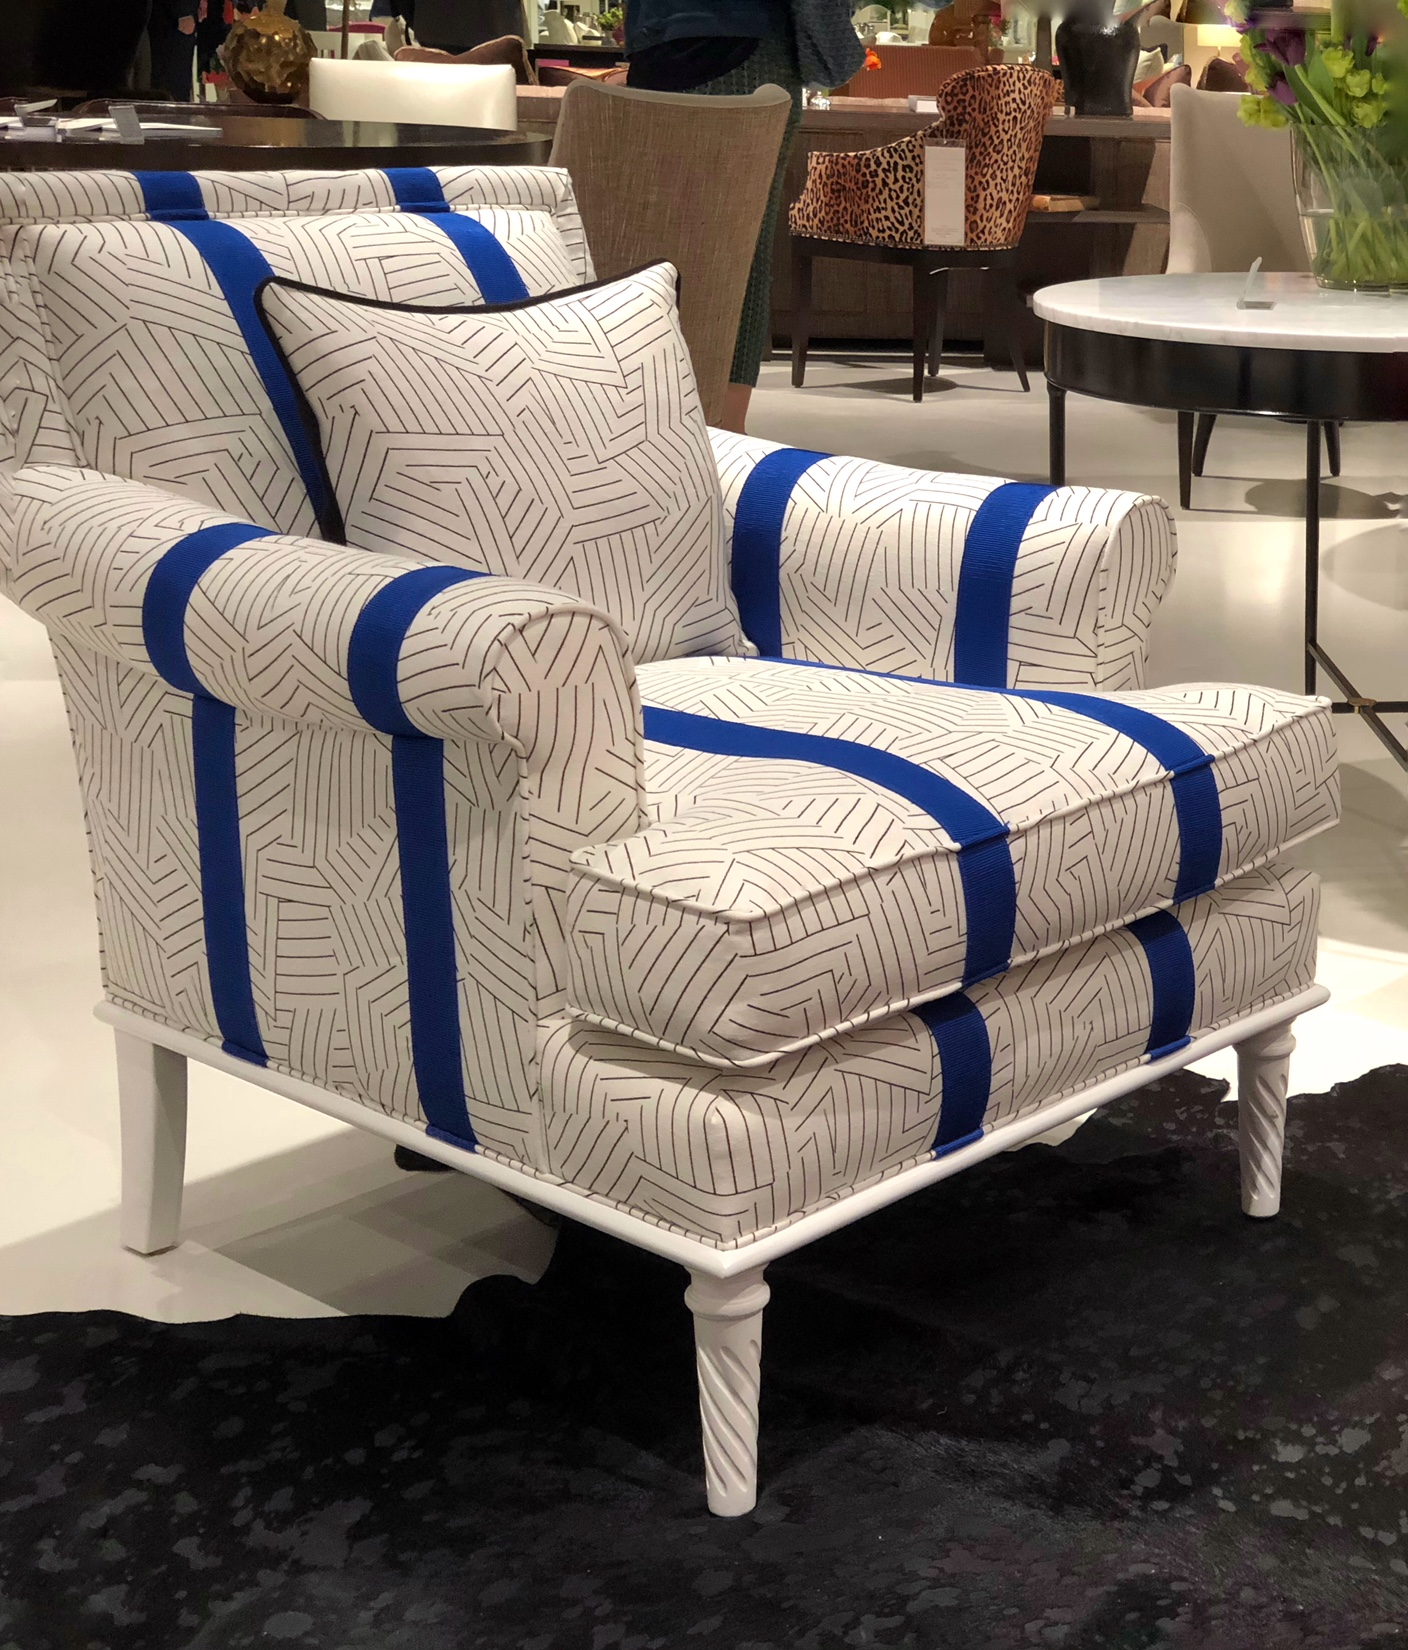 white chair with blue trim